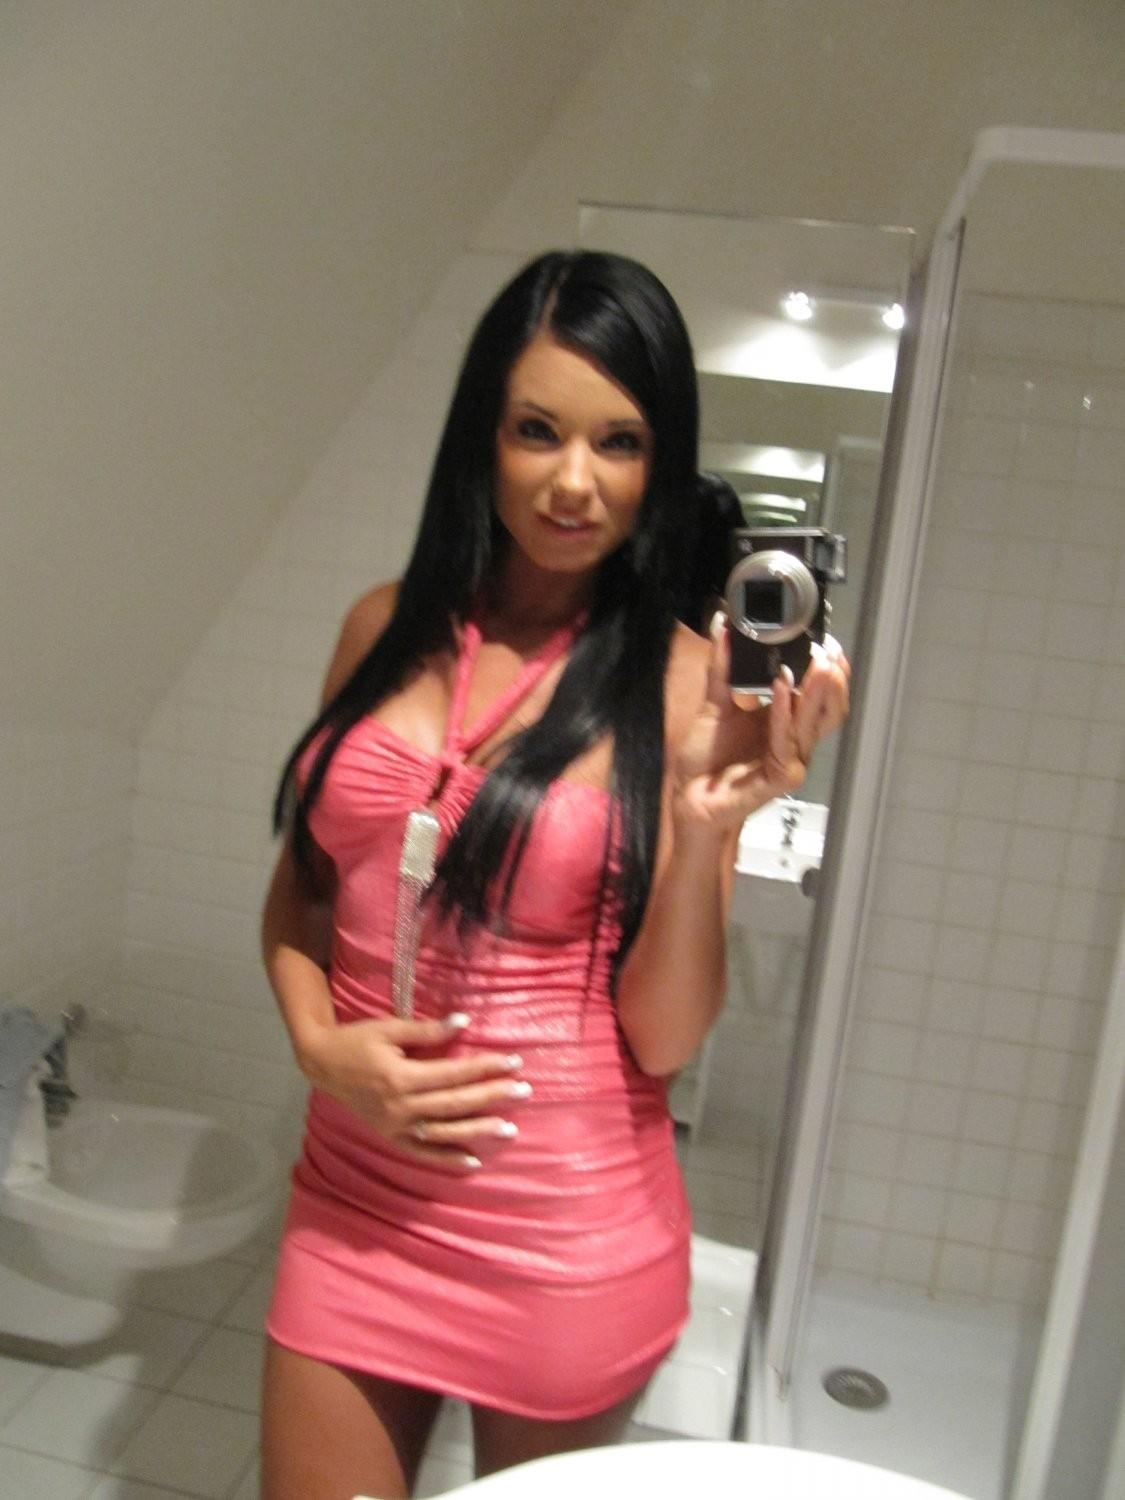 ashley-bulgari-self-shot-bathroom-mirror-01